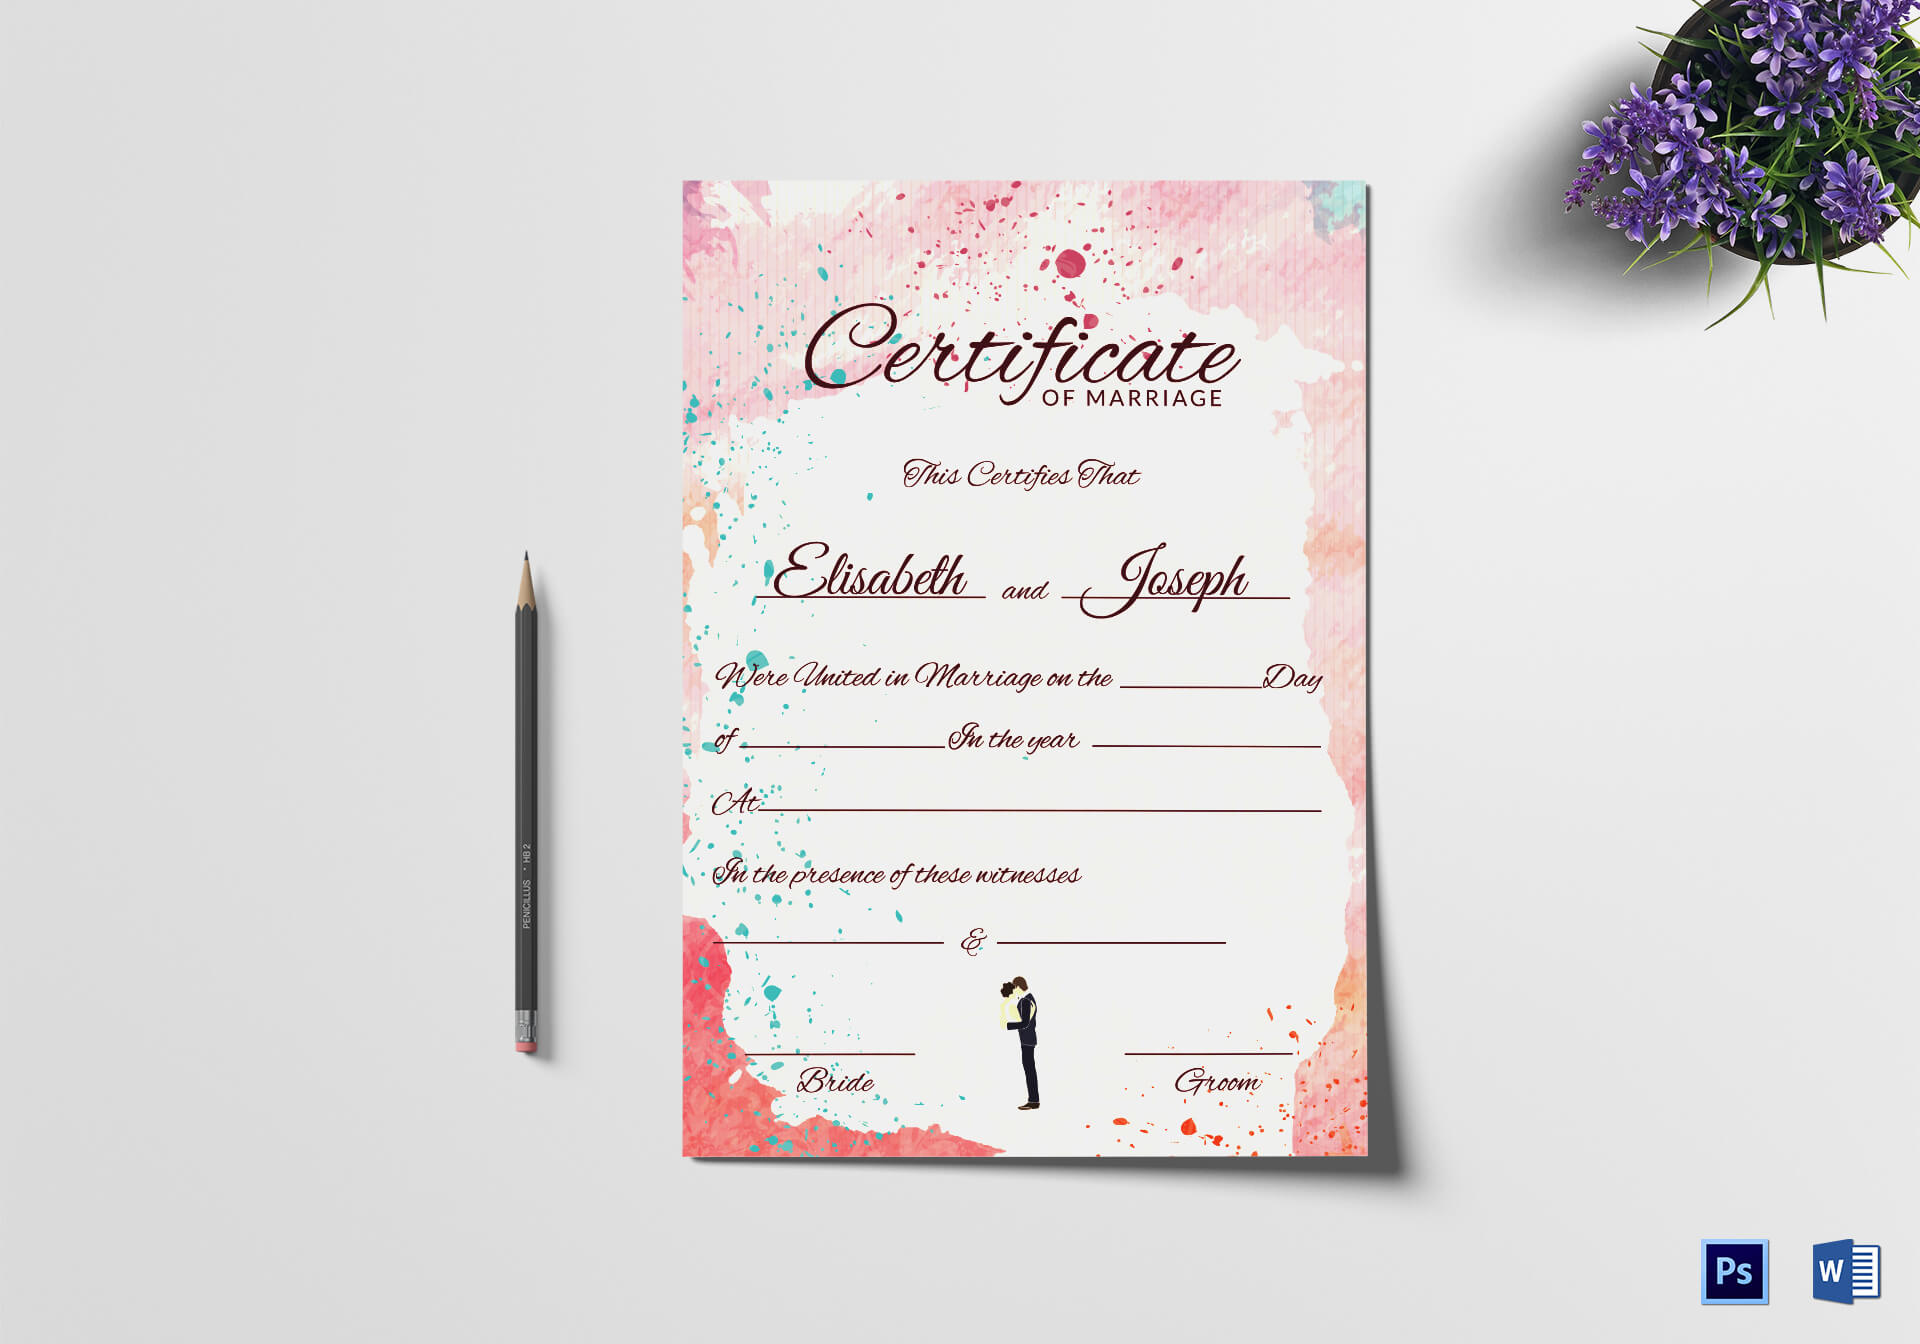 Christian Marriage Certificate Template intended for Certificate Of Marriage Template